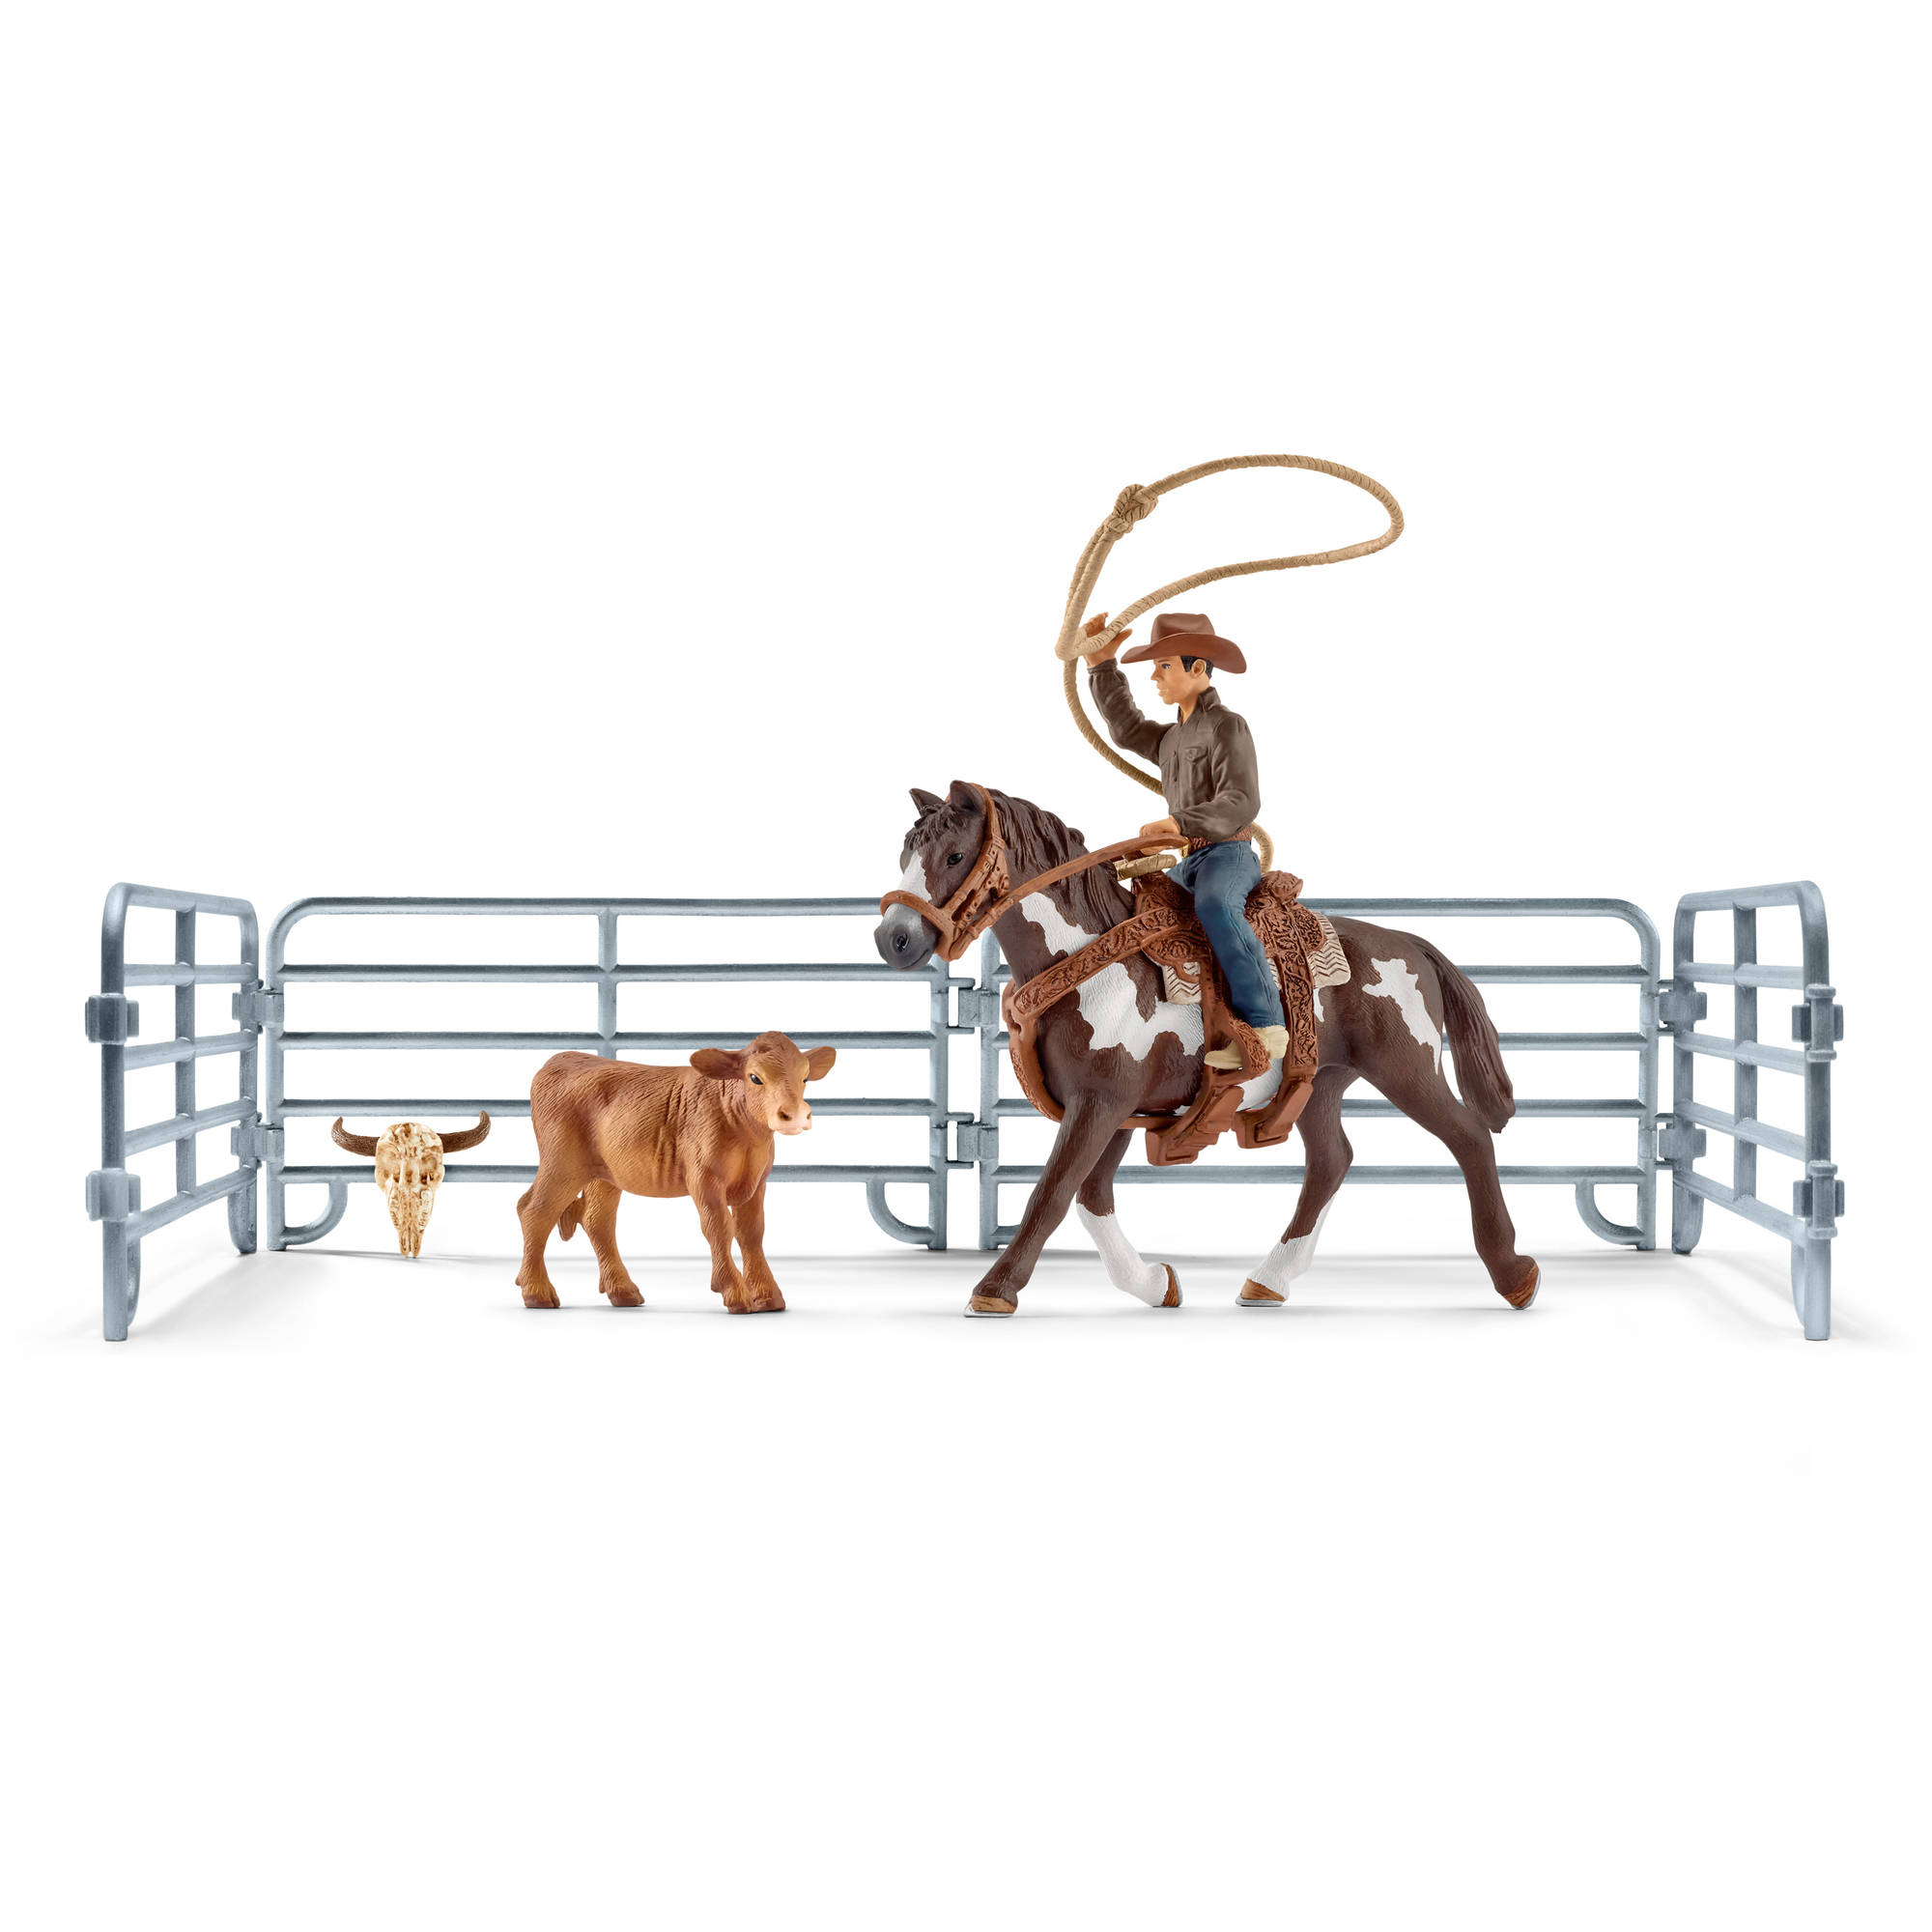 Schleich Farm World, Team Roping with Cowboy Set by Schleich USA Inc